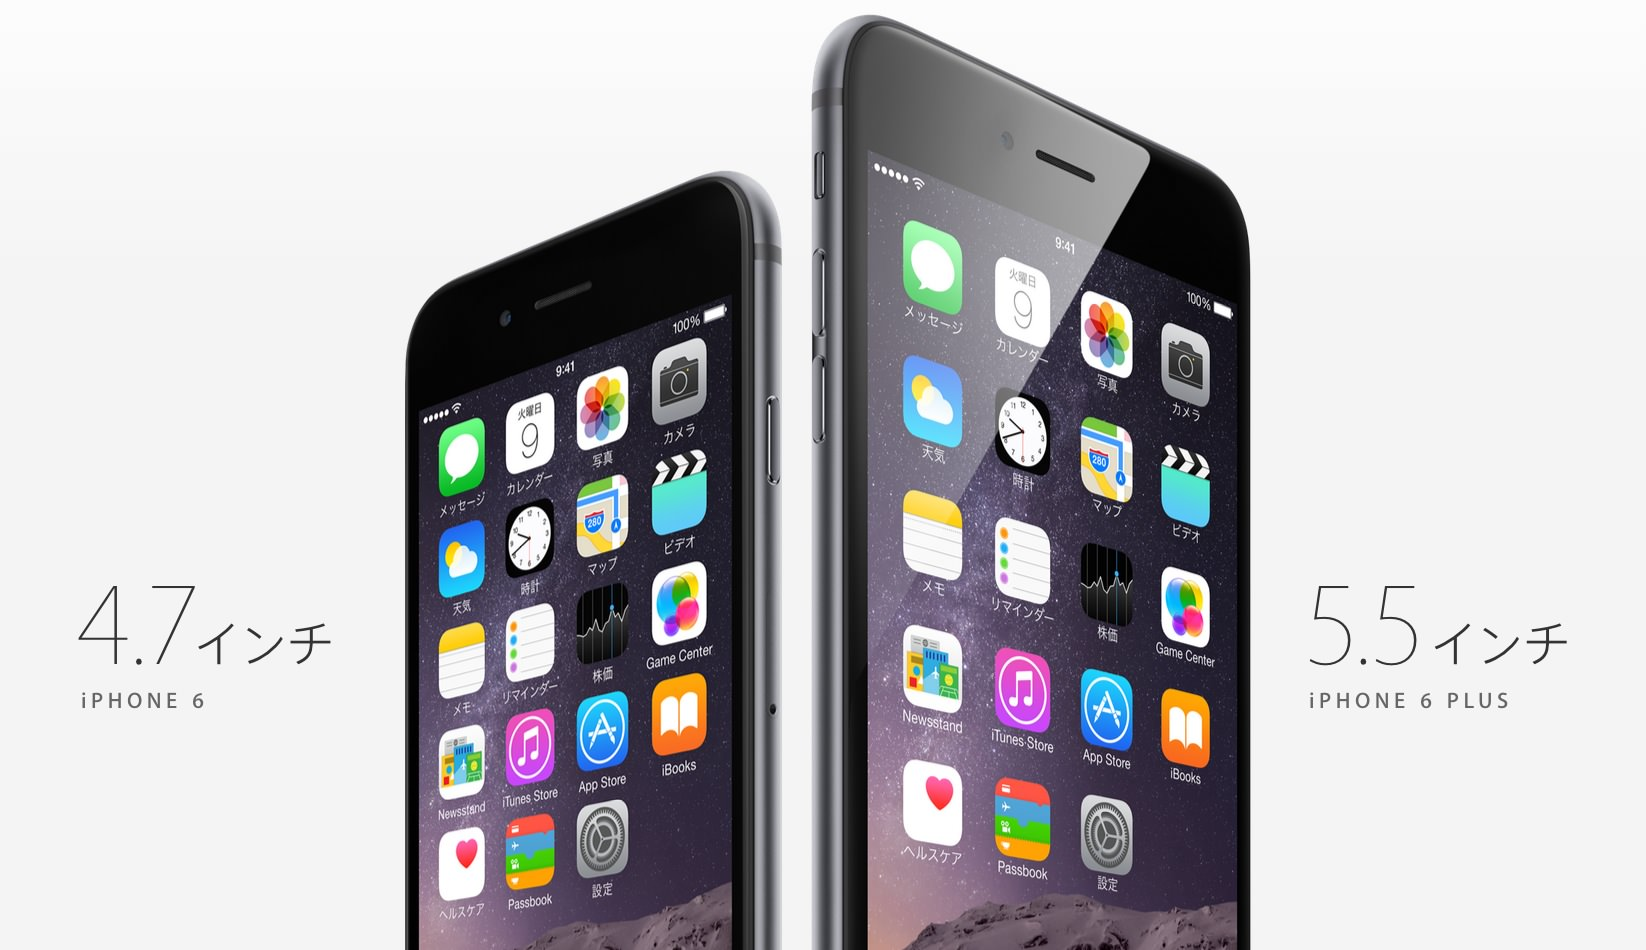 Iphone6 and iphone6plus compare 02